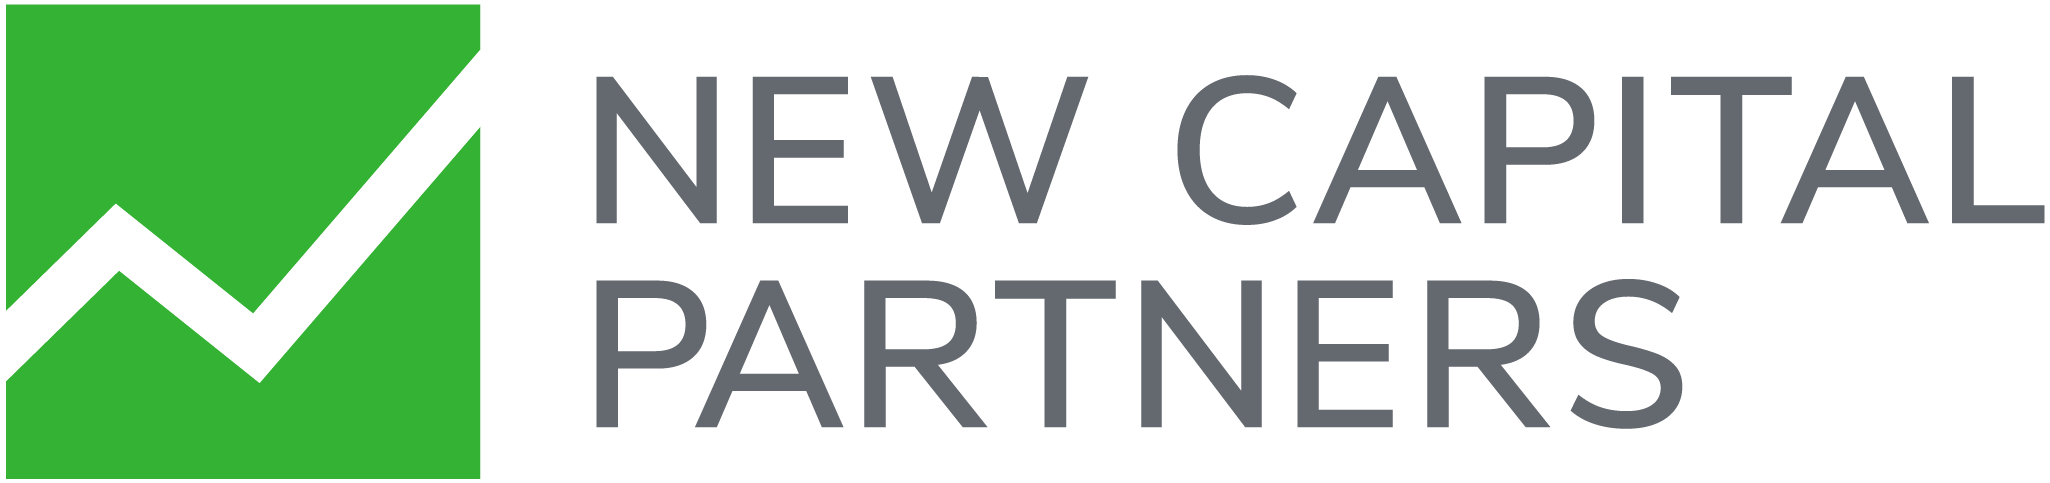 New Capital Partners Logo